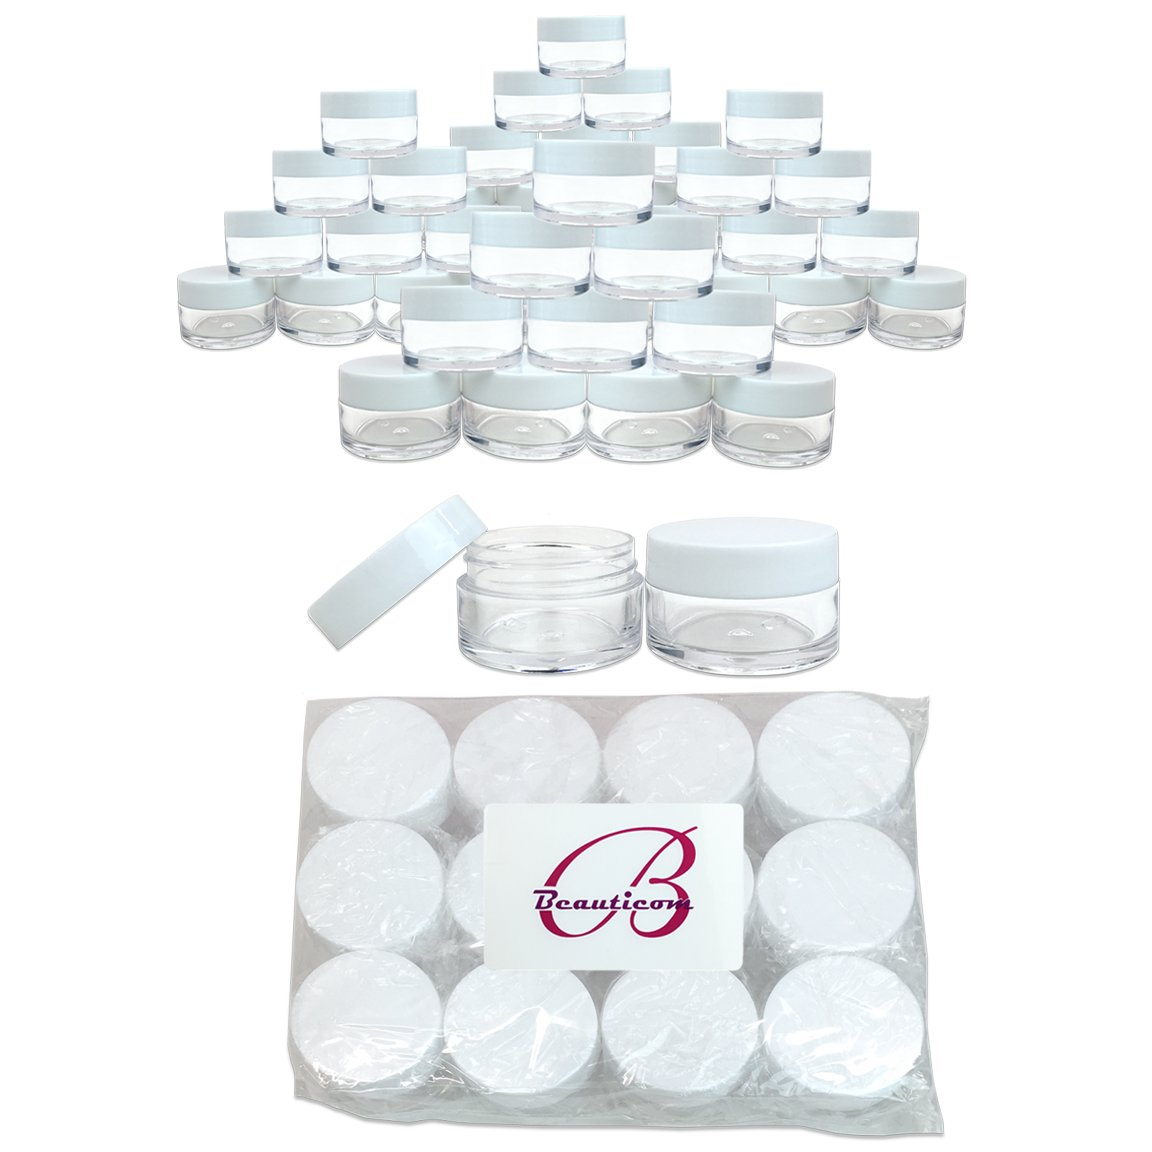 Beauticom 120 Pieces 20G/20ML Round Clear Jars with WHITE Lids for Lotion, Creams, Toners, Lip Balms, Makeup Samples - BPA Free by Beauticom